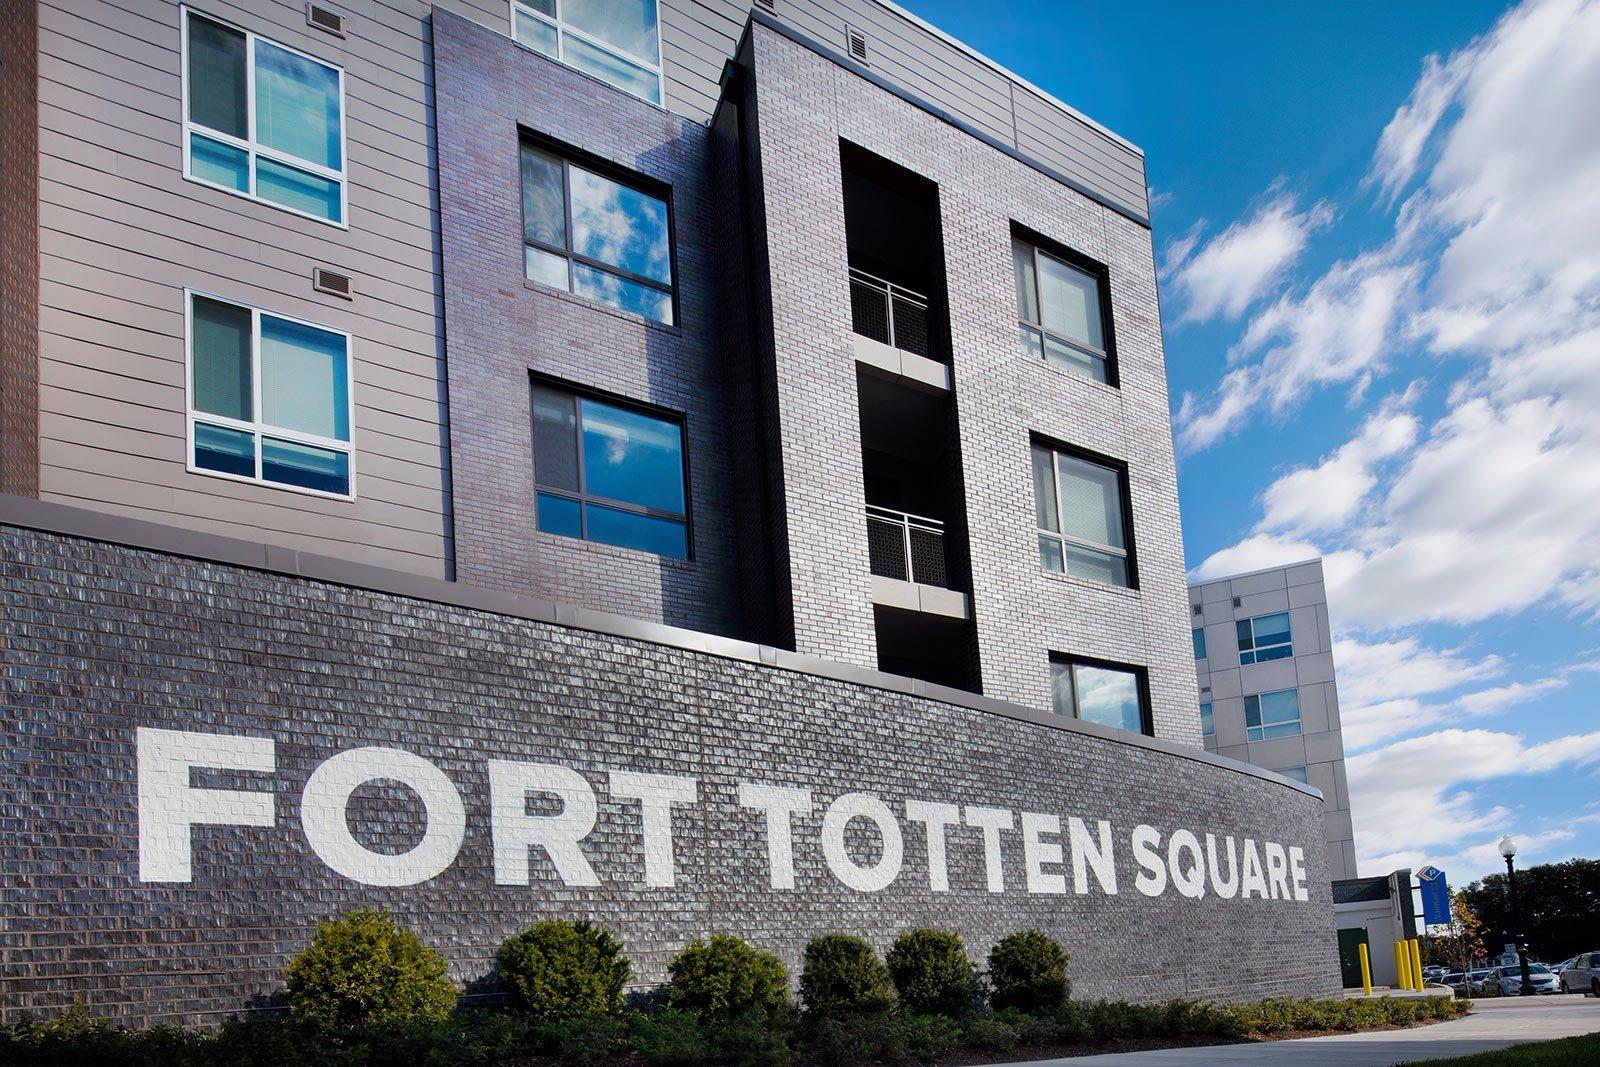 Fort Totten Square image 3